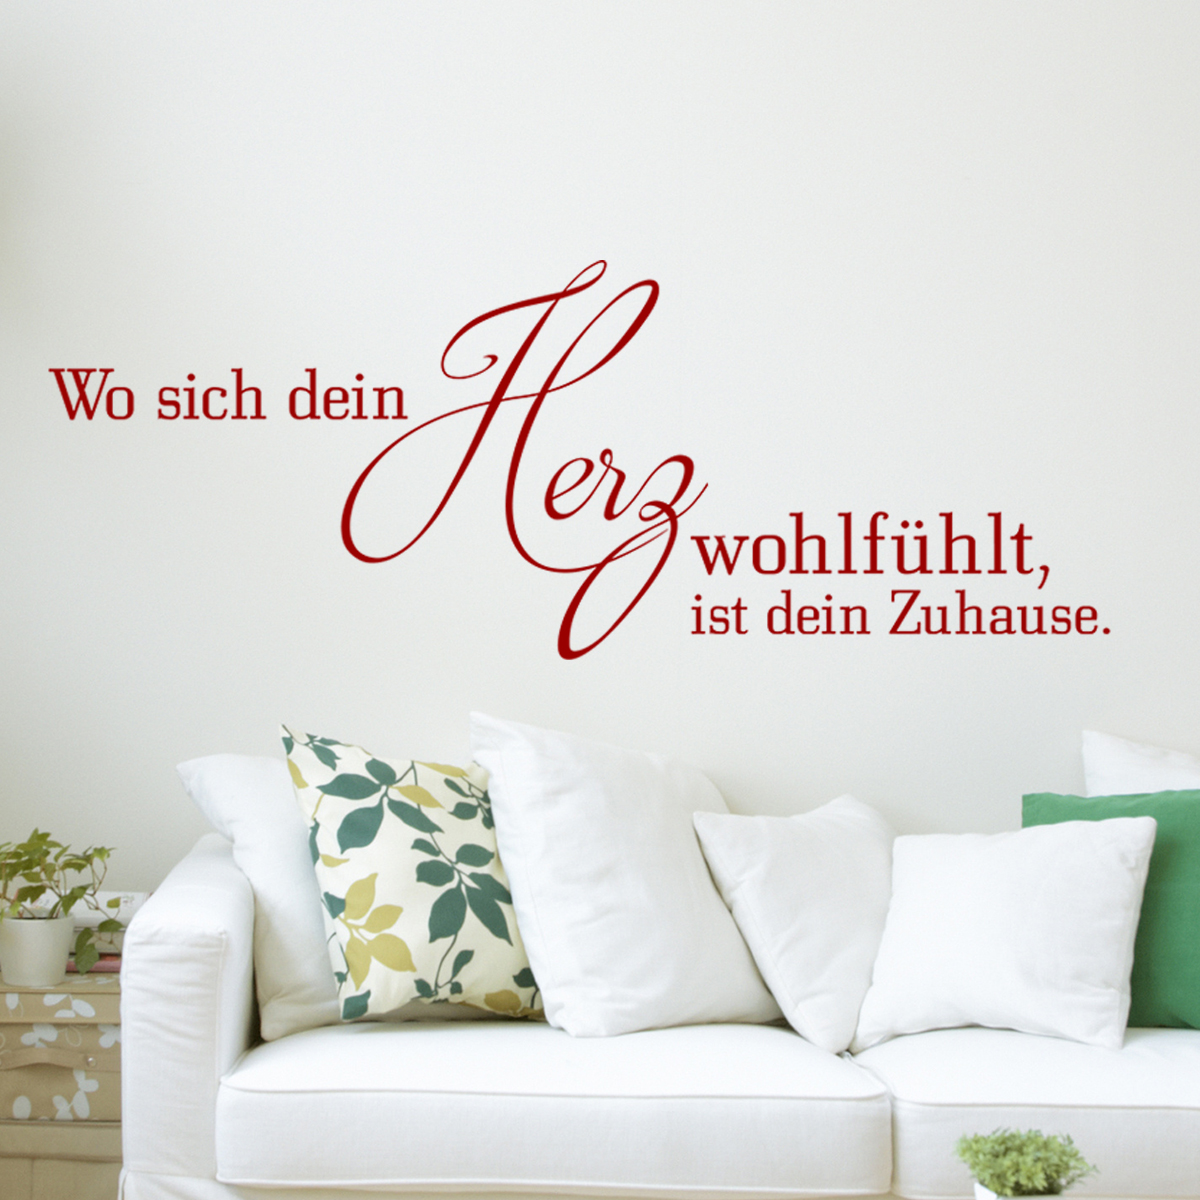 sticker citation wo sich dein herz wohlf hlt stickers. Black Bedroom Furniture Sets. Home Design Ideas